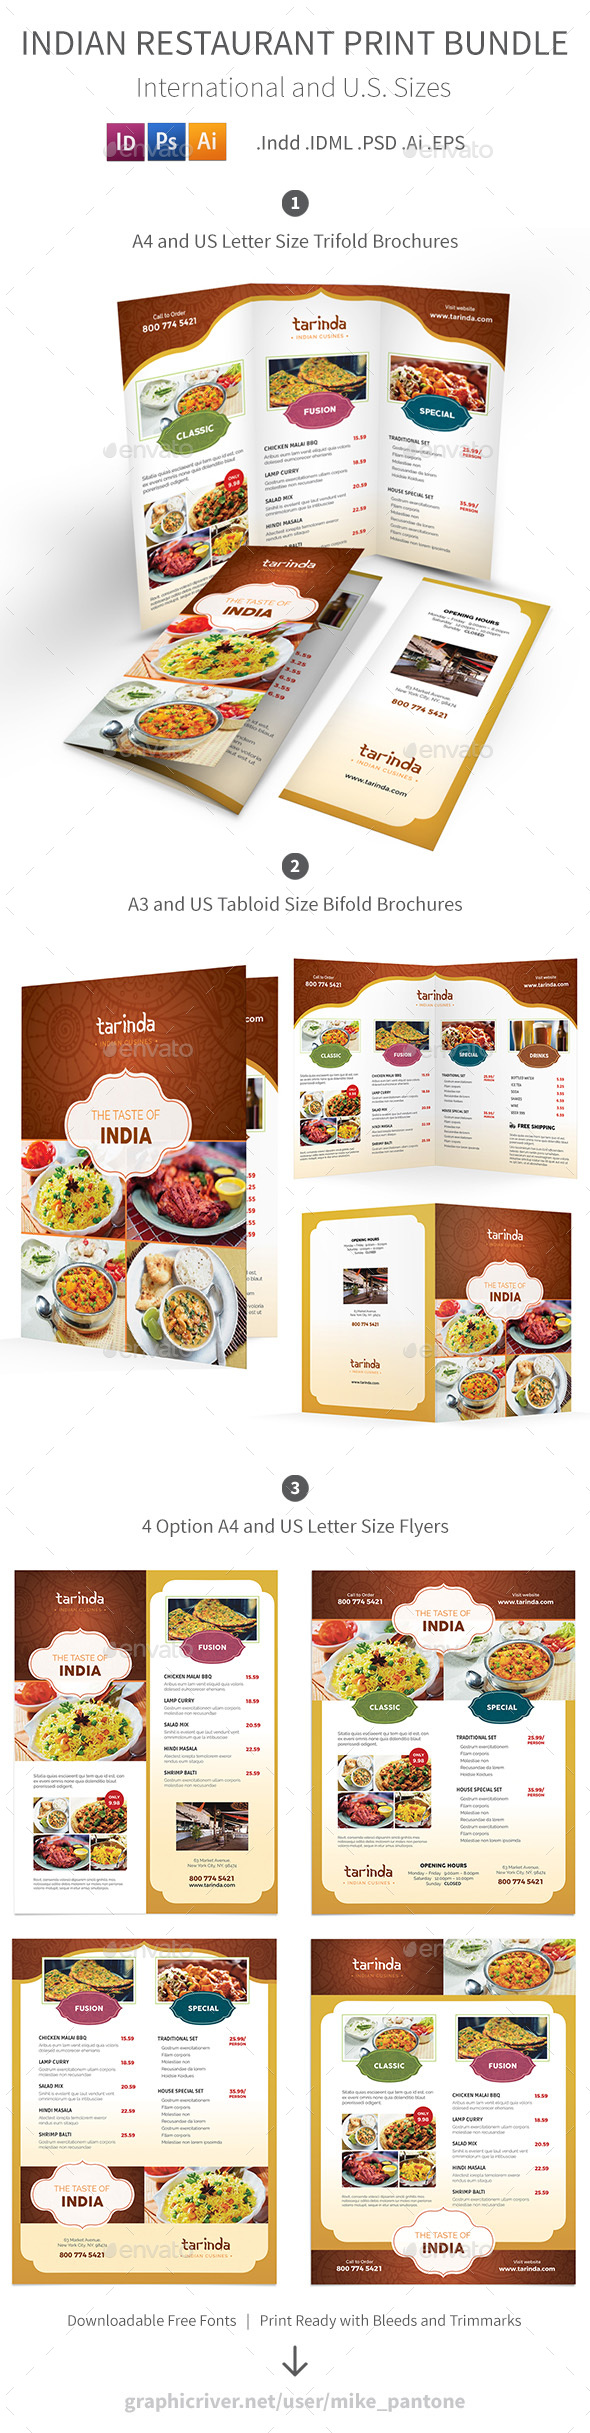 Indian Restaurant Menu Print Bundle | Print templates, Menu and Template